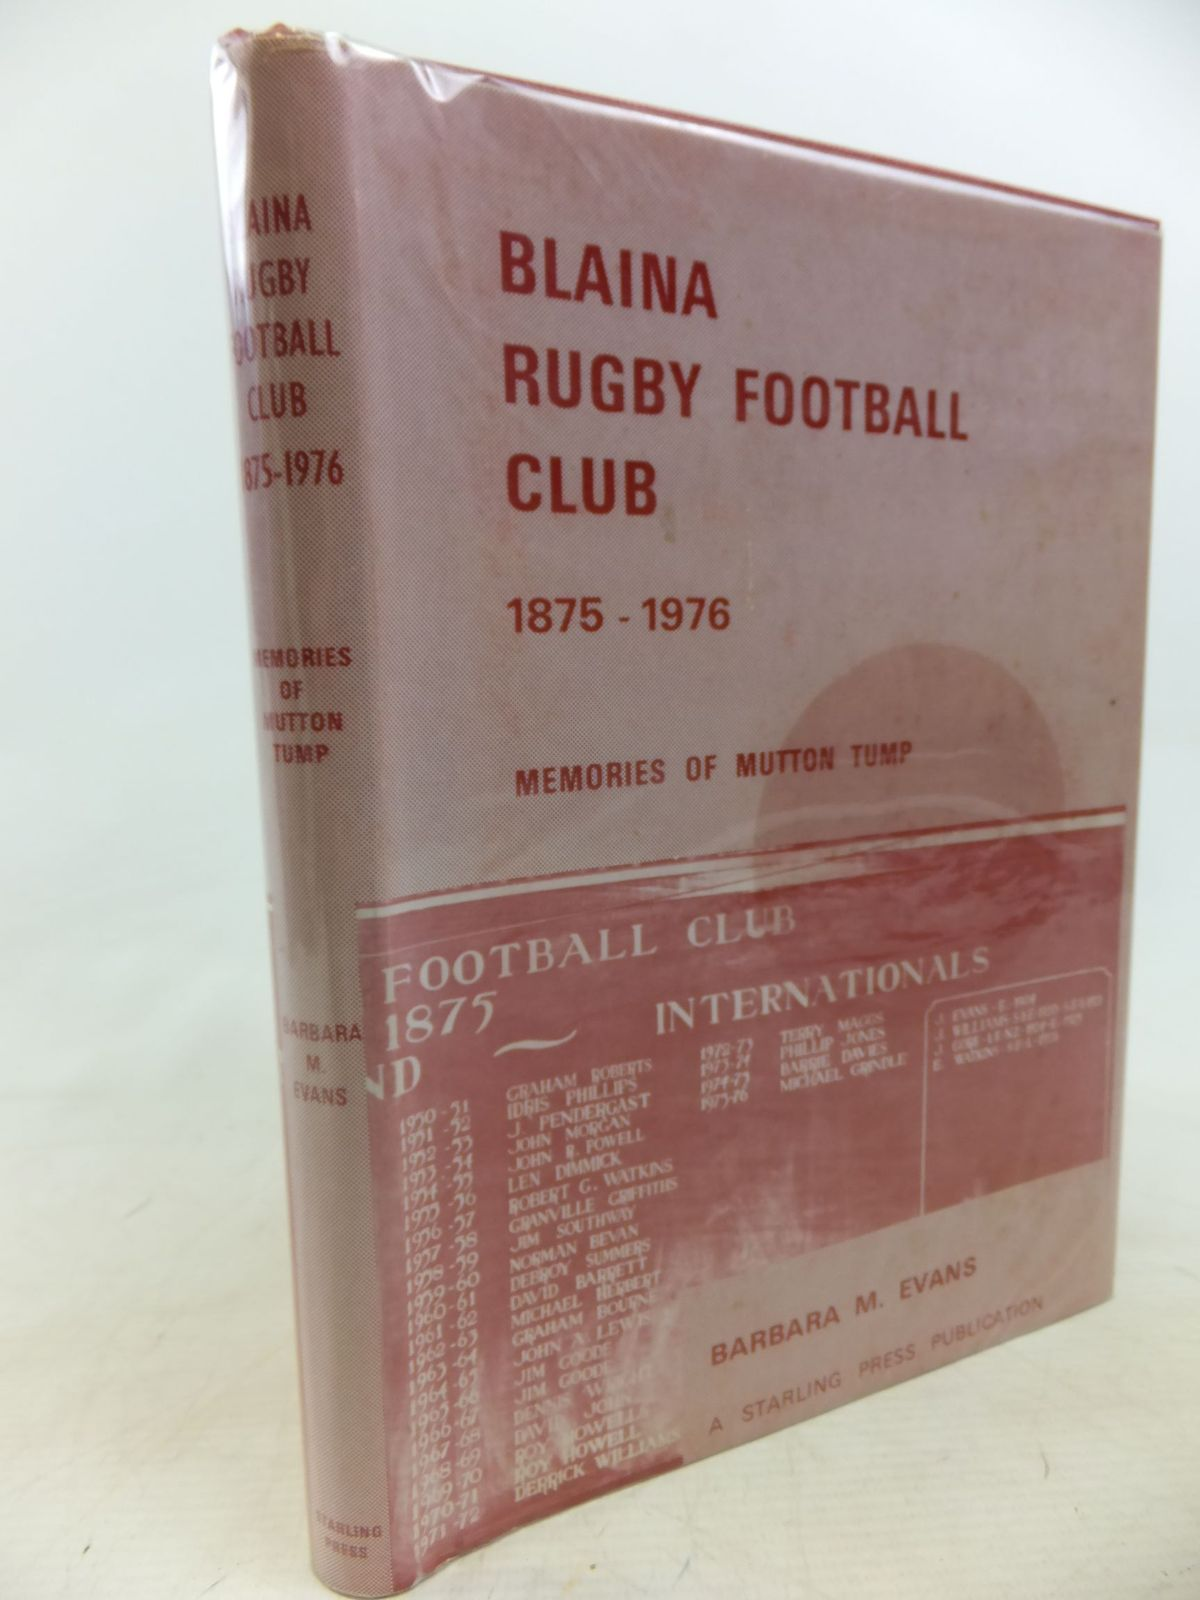 Photo of BLAINA RUGBY FOOTBALL CLUB 1875-1976 written by Evans, Barbara M. published by The Starling Press (STOCK CODE: 1712832)  for sale by Stella & Rose's Books